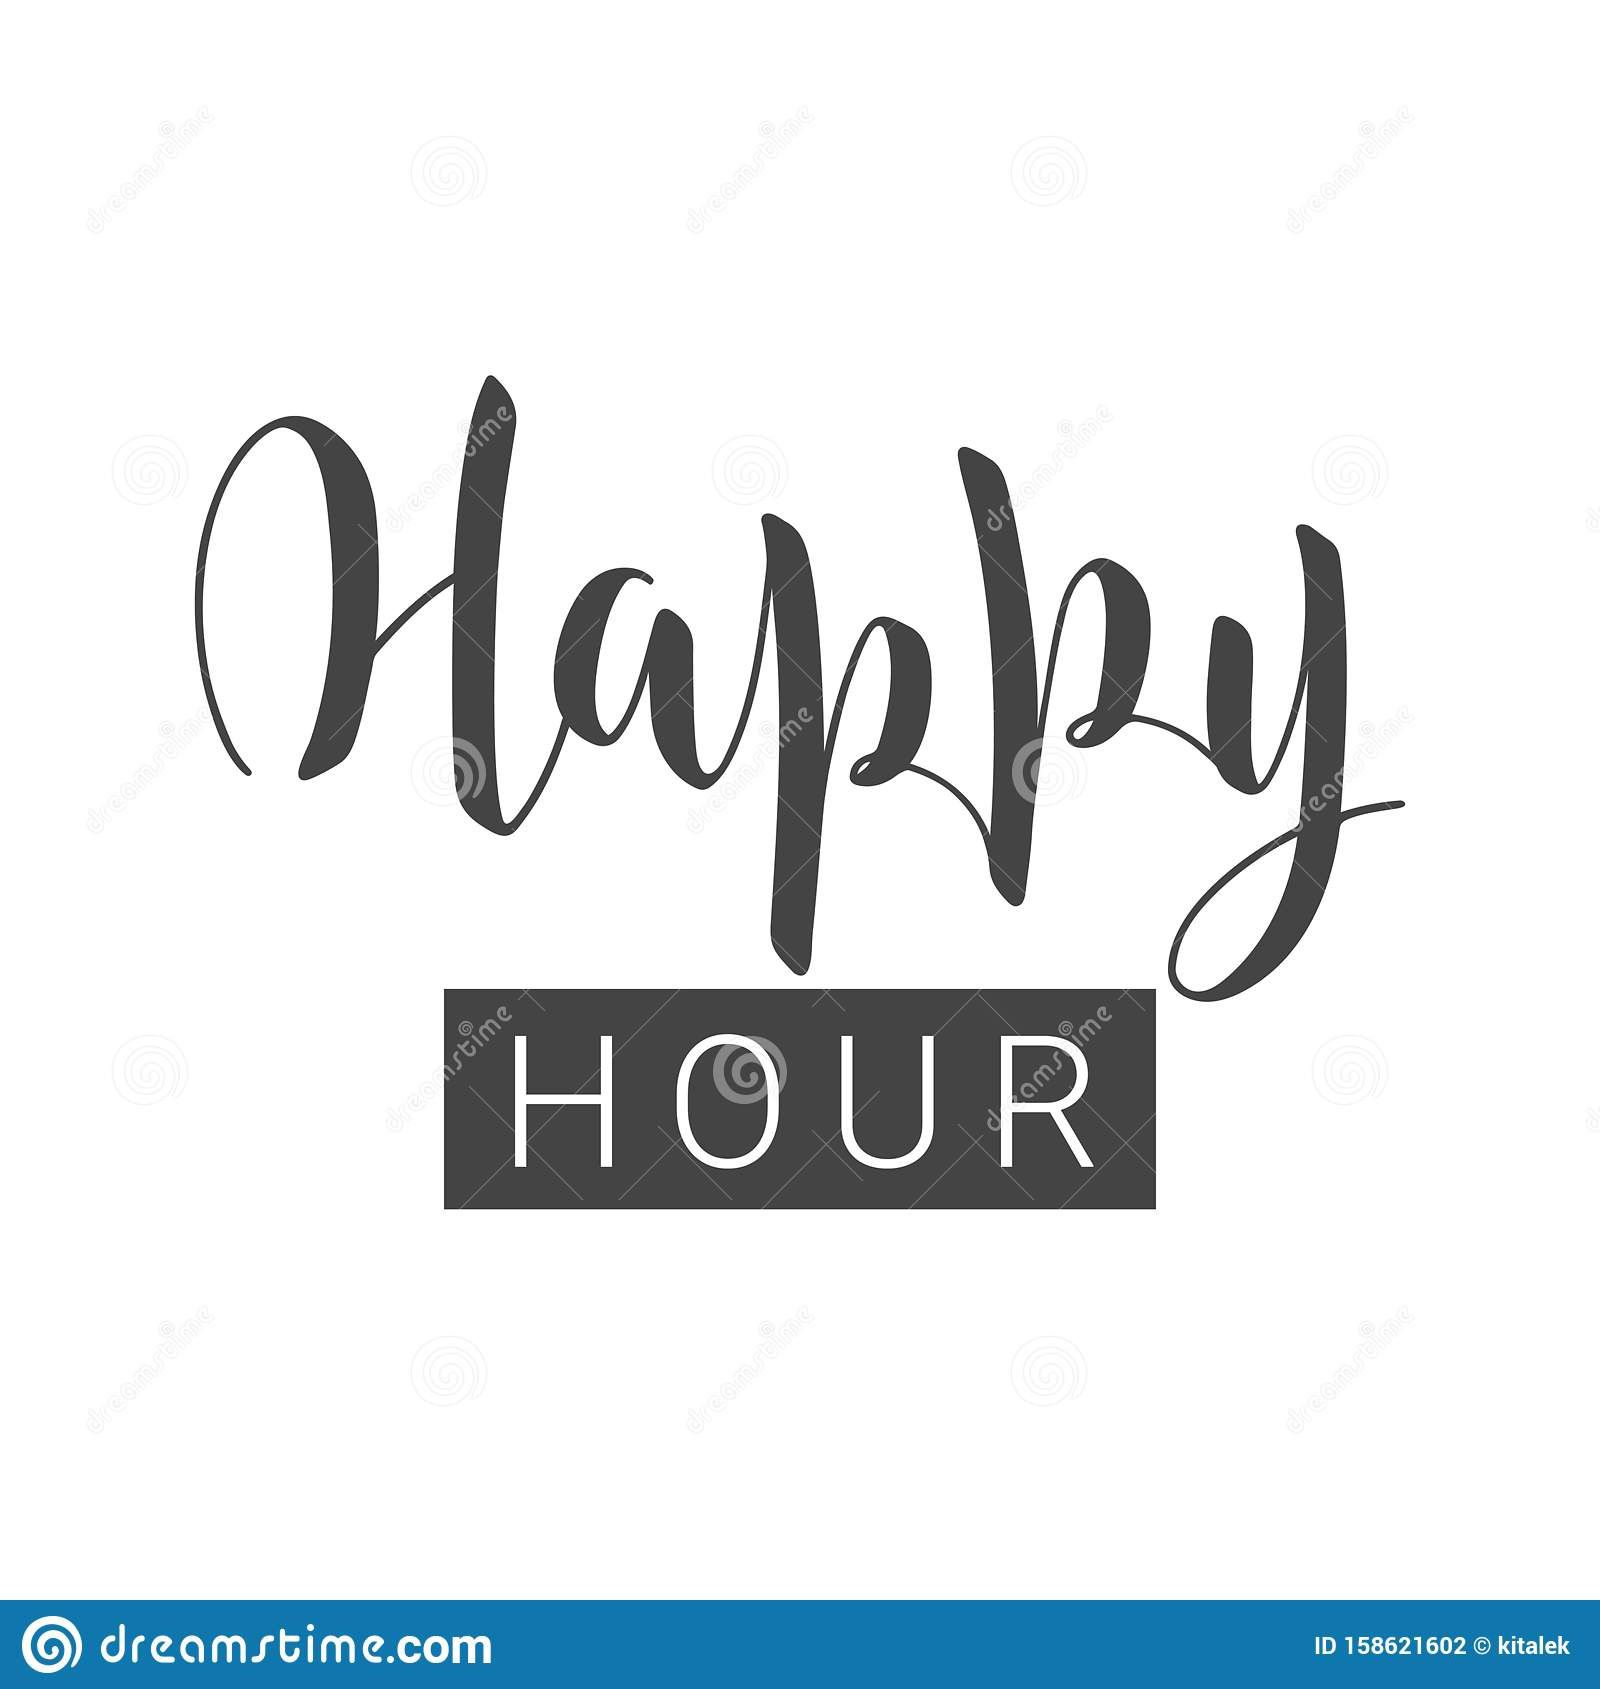 005 Amazing Happy Hour Invitation Template Idea  Templates Free Word FarewellFull